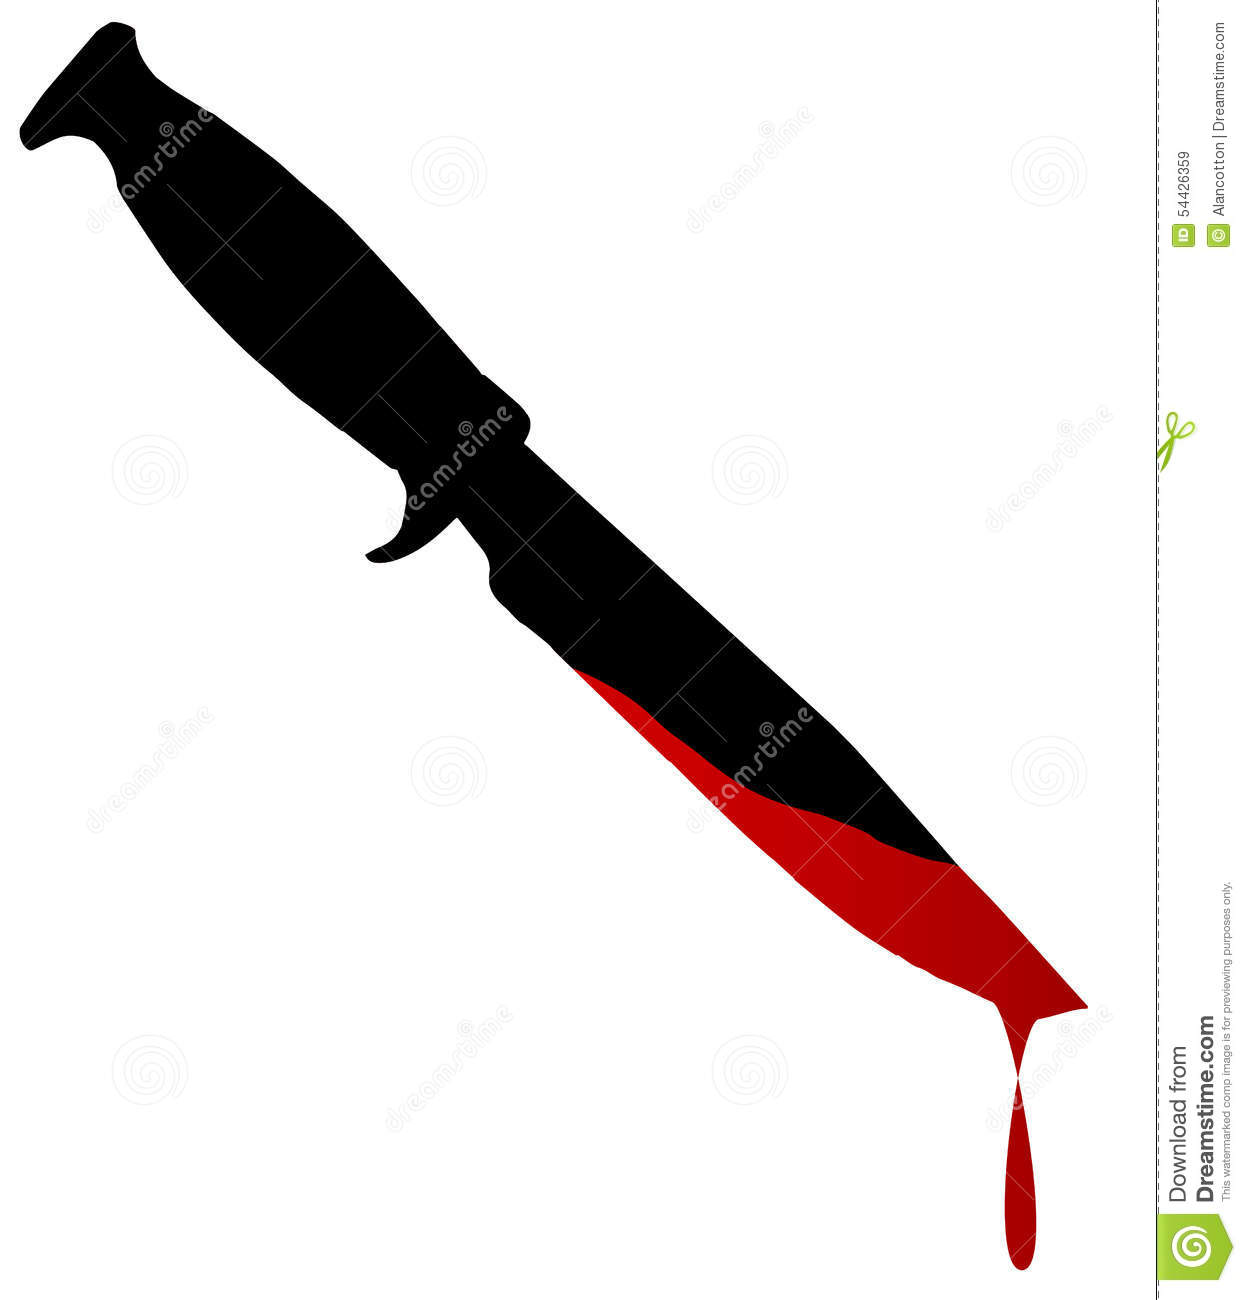 Dagger clipart blood Clipart dripping Bowie A Knife